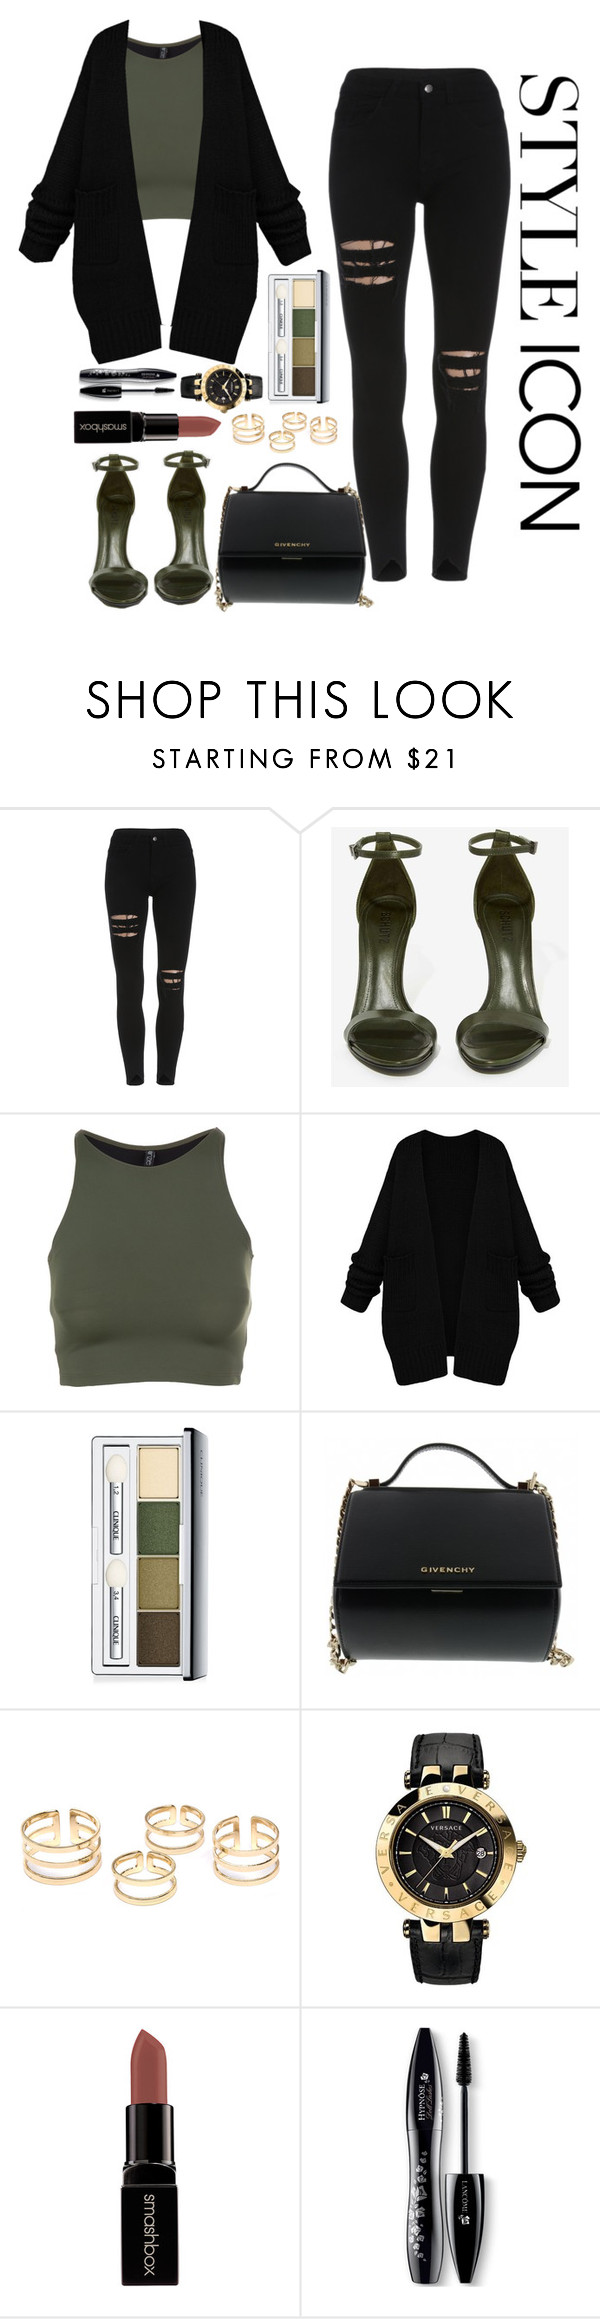 """""""Style Icon #2"""" by kpopmvtrends ❤ liked on Polyvore featuring Schutz, Onzie, Clinique, Givenchy, Versace, Smashbox and Lancôme"""